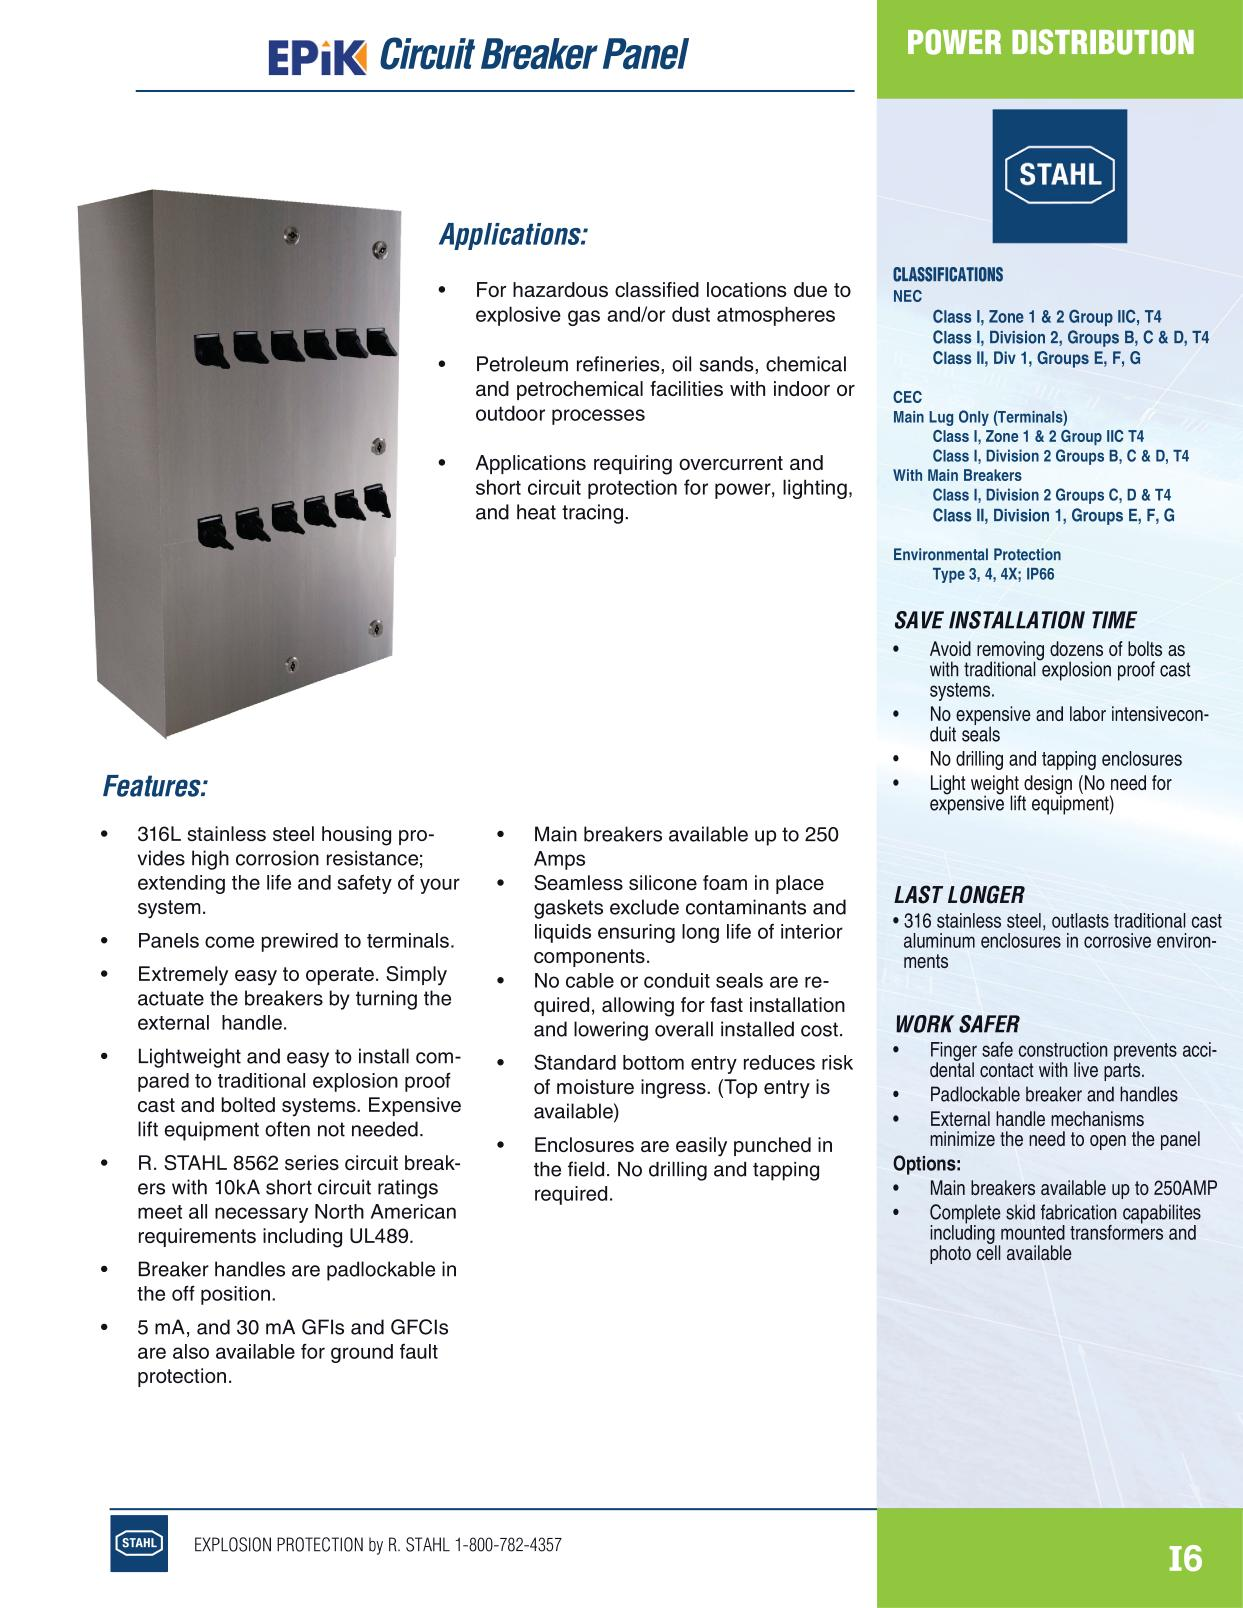 Distribution R Stahl Electrical Catalog 9016 Page I6 Circuit Breaker Panel Image